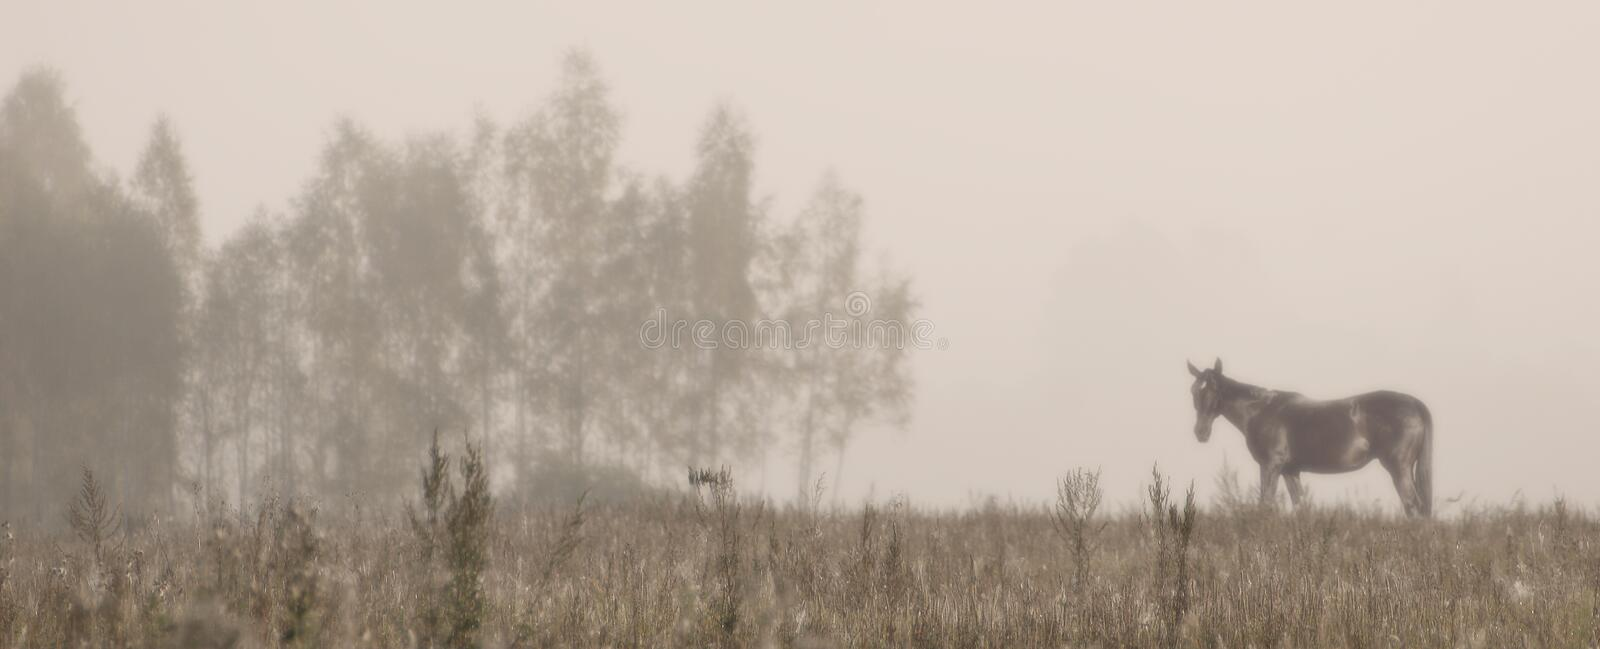 Landscape with horse and fog royalty free stock photography